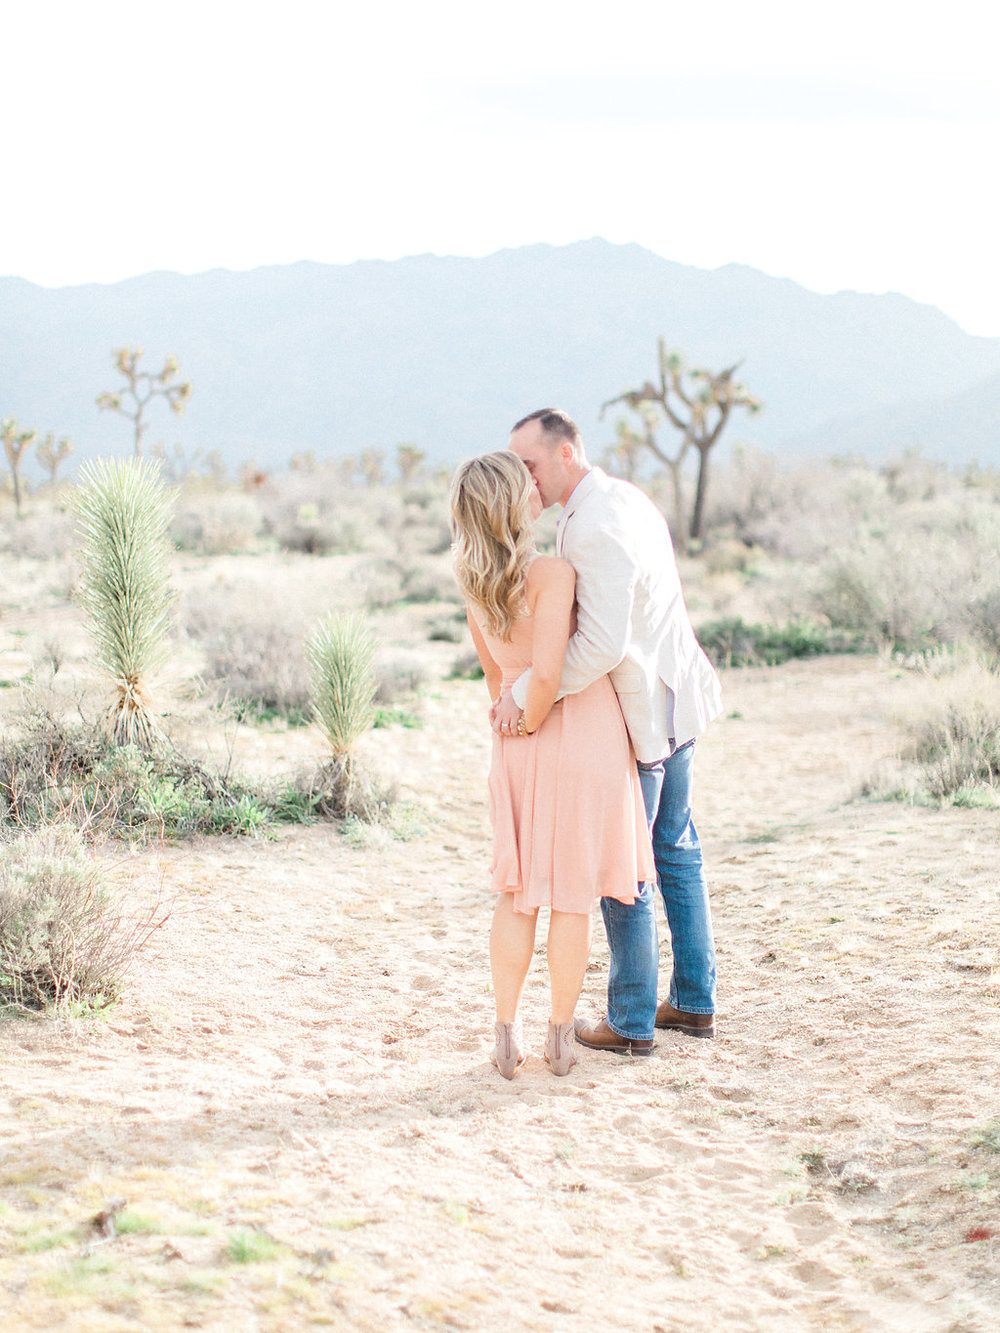 Joshua Tree Engagement Session | What to Wear for Pictures | Southern California Wedding Photographer | Mastin Labs Fuji Film | Fine Art Photographer | Desert Shoot | Gorgeous Sunset Desert Shoot.jpg